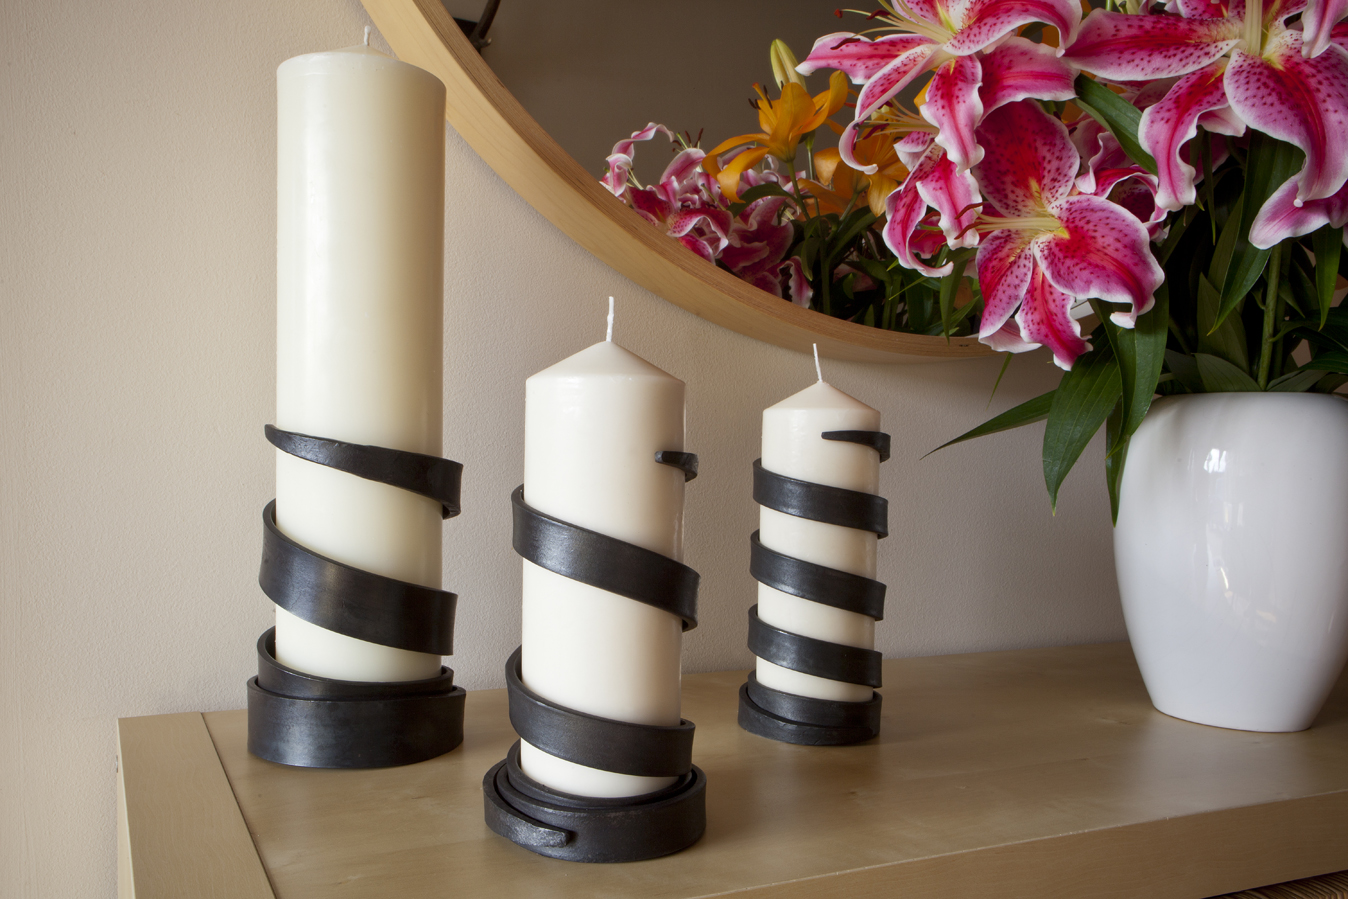 James Ritchie Steel Spiral Candle Holders